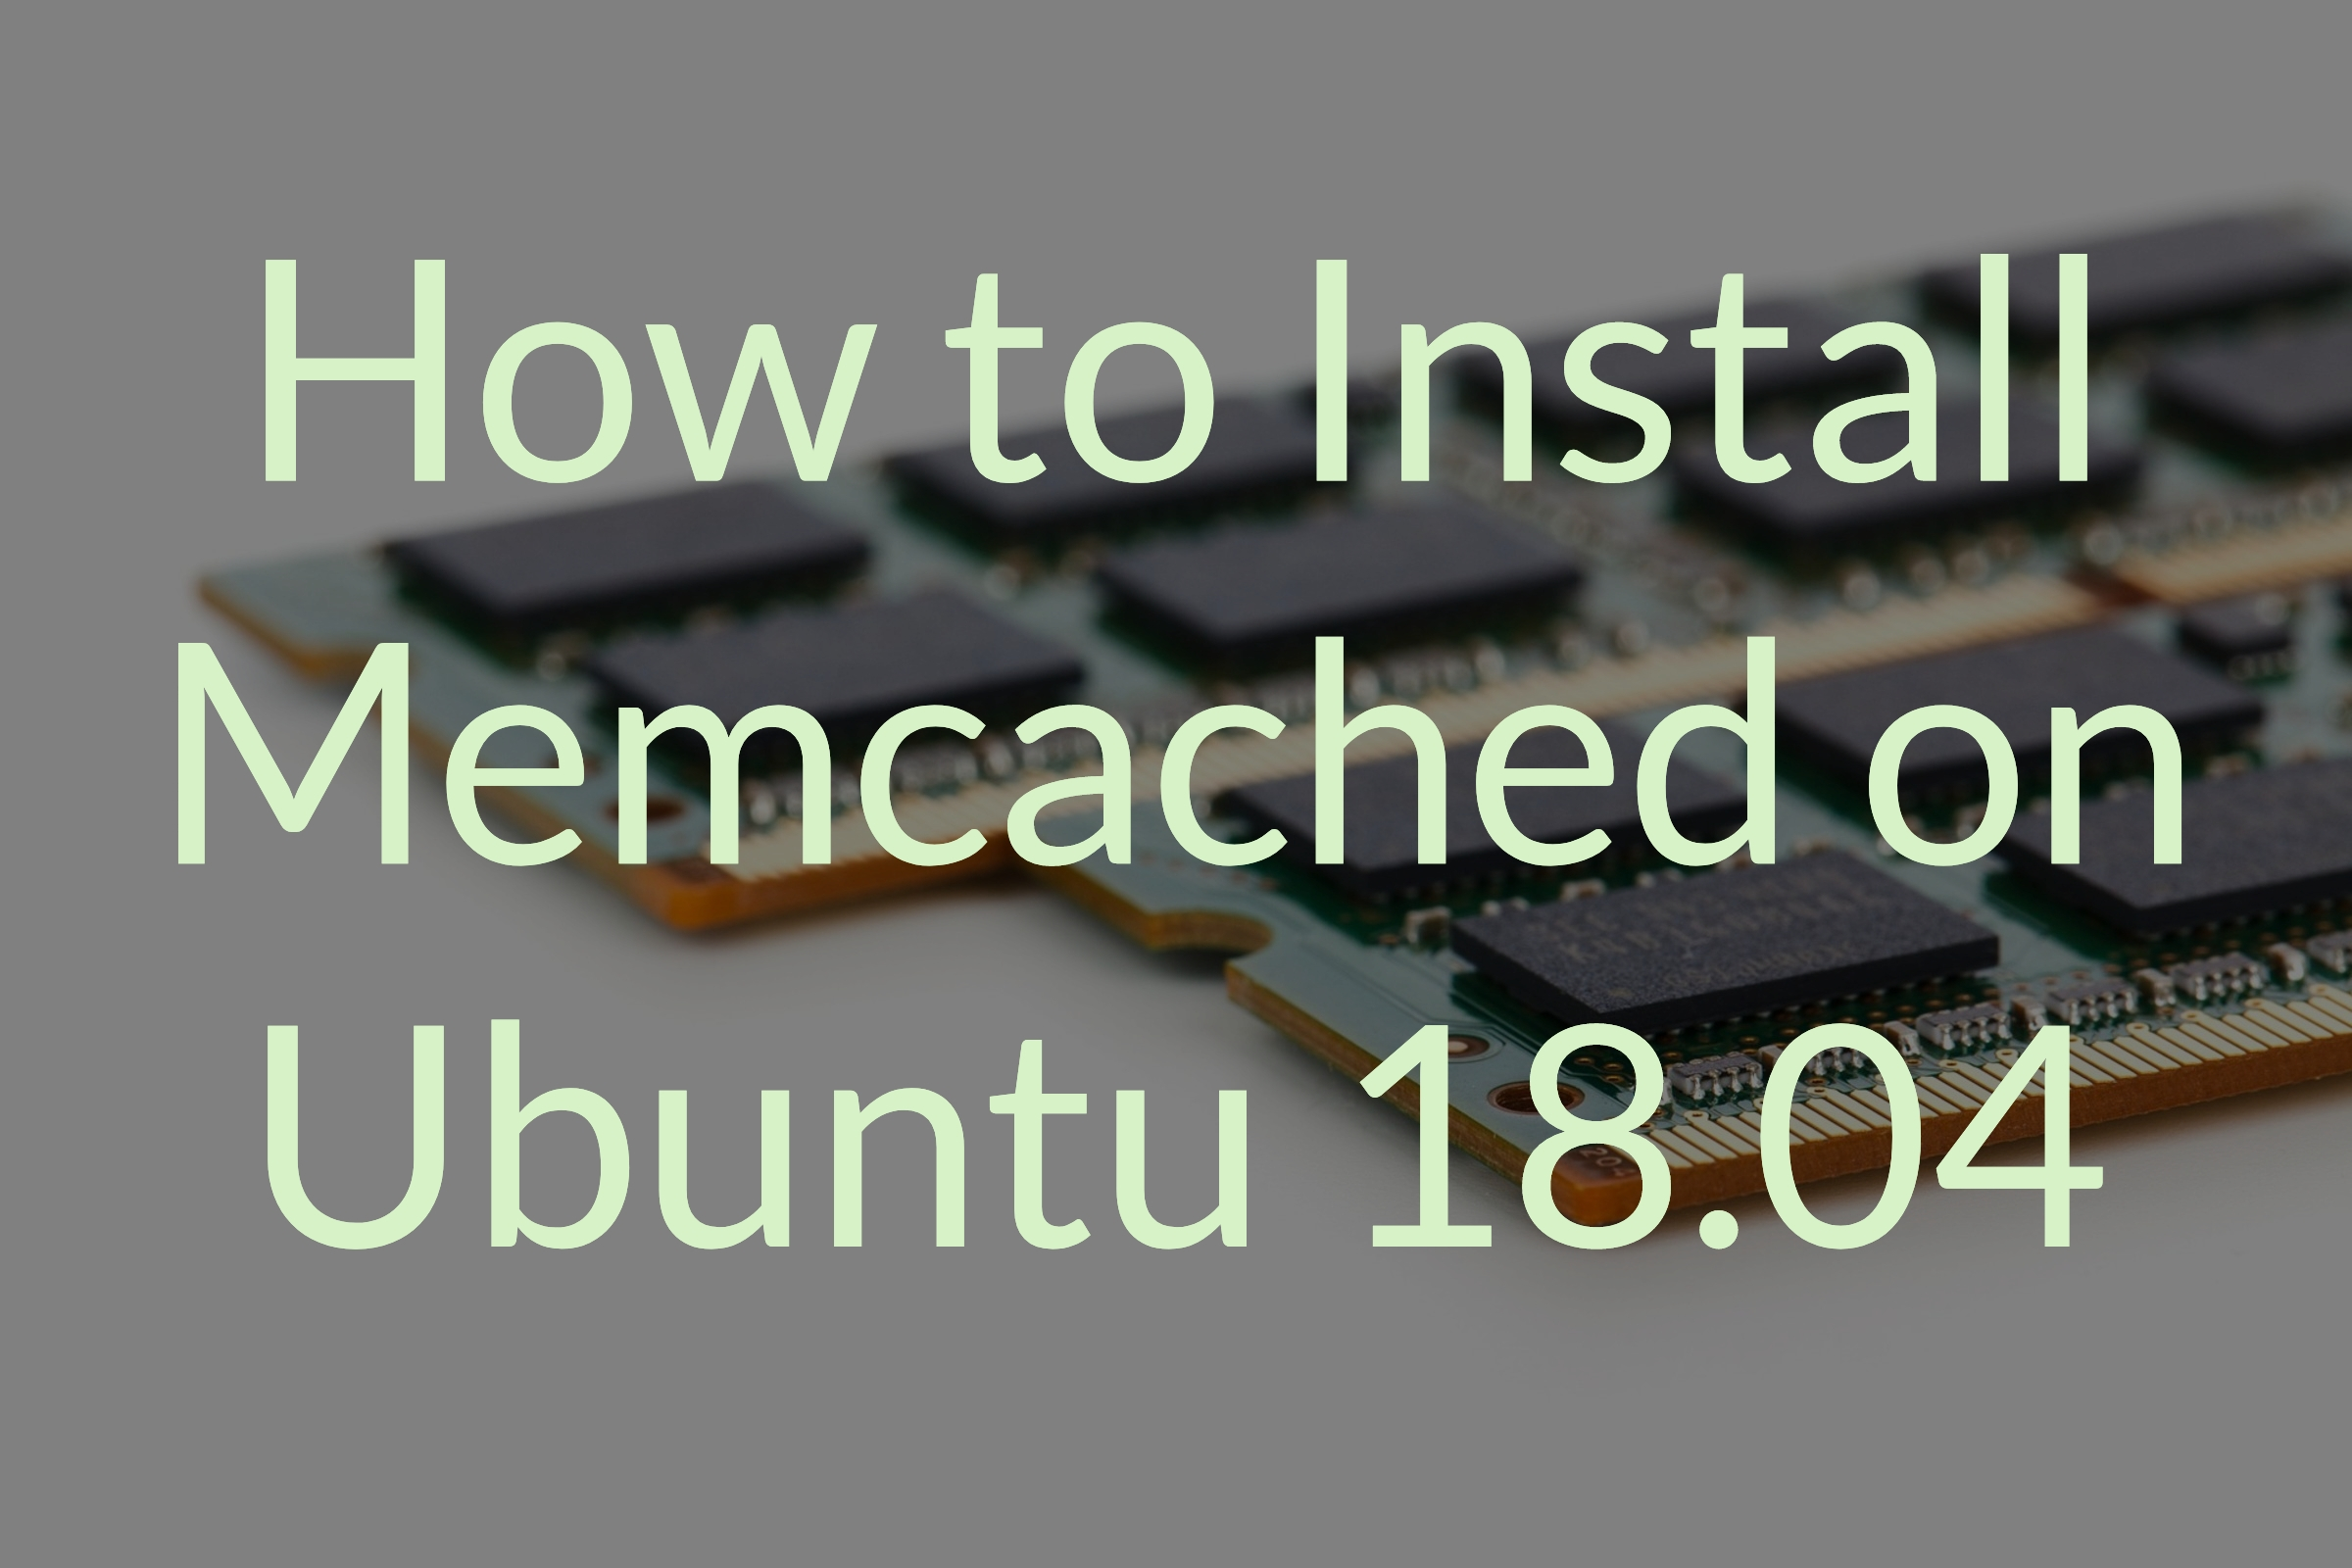 install memcached on ubuntu 18.04